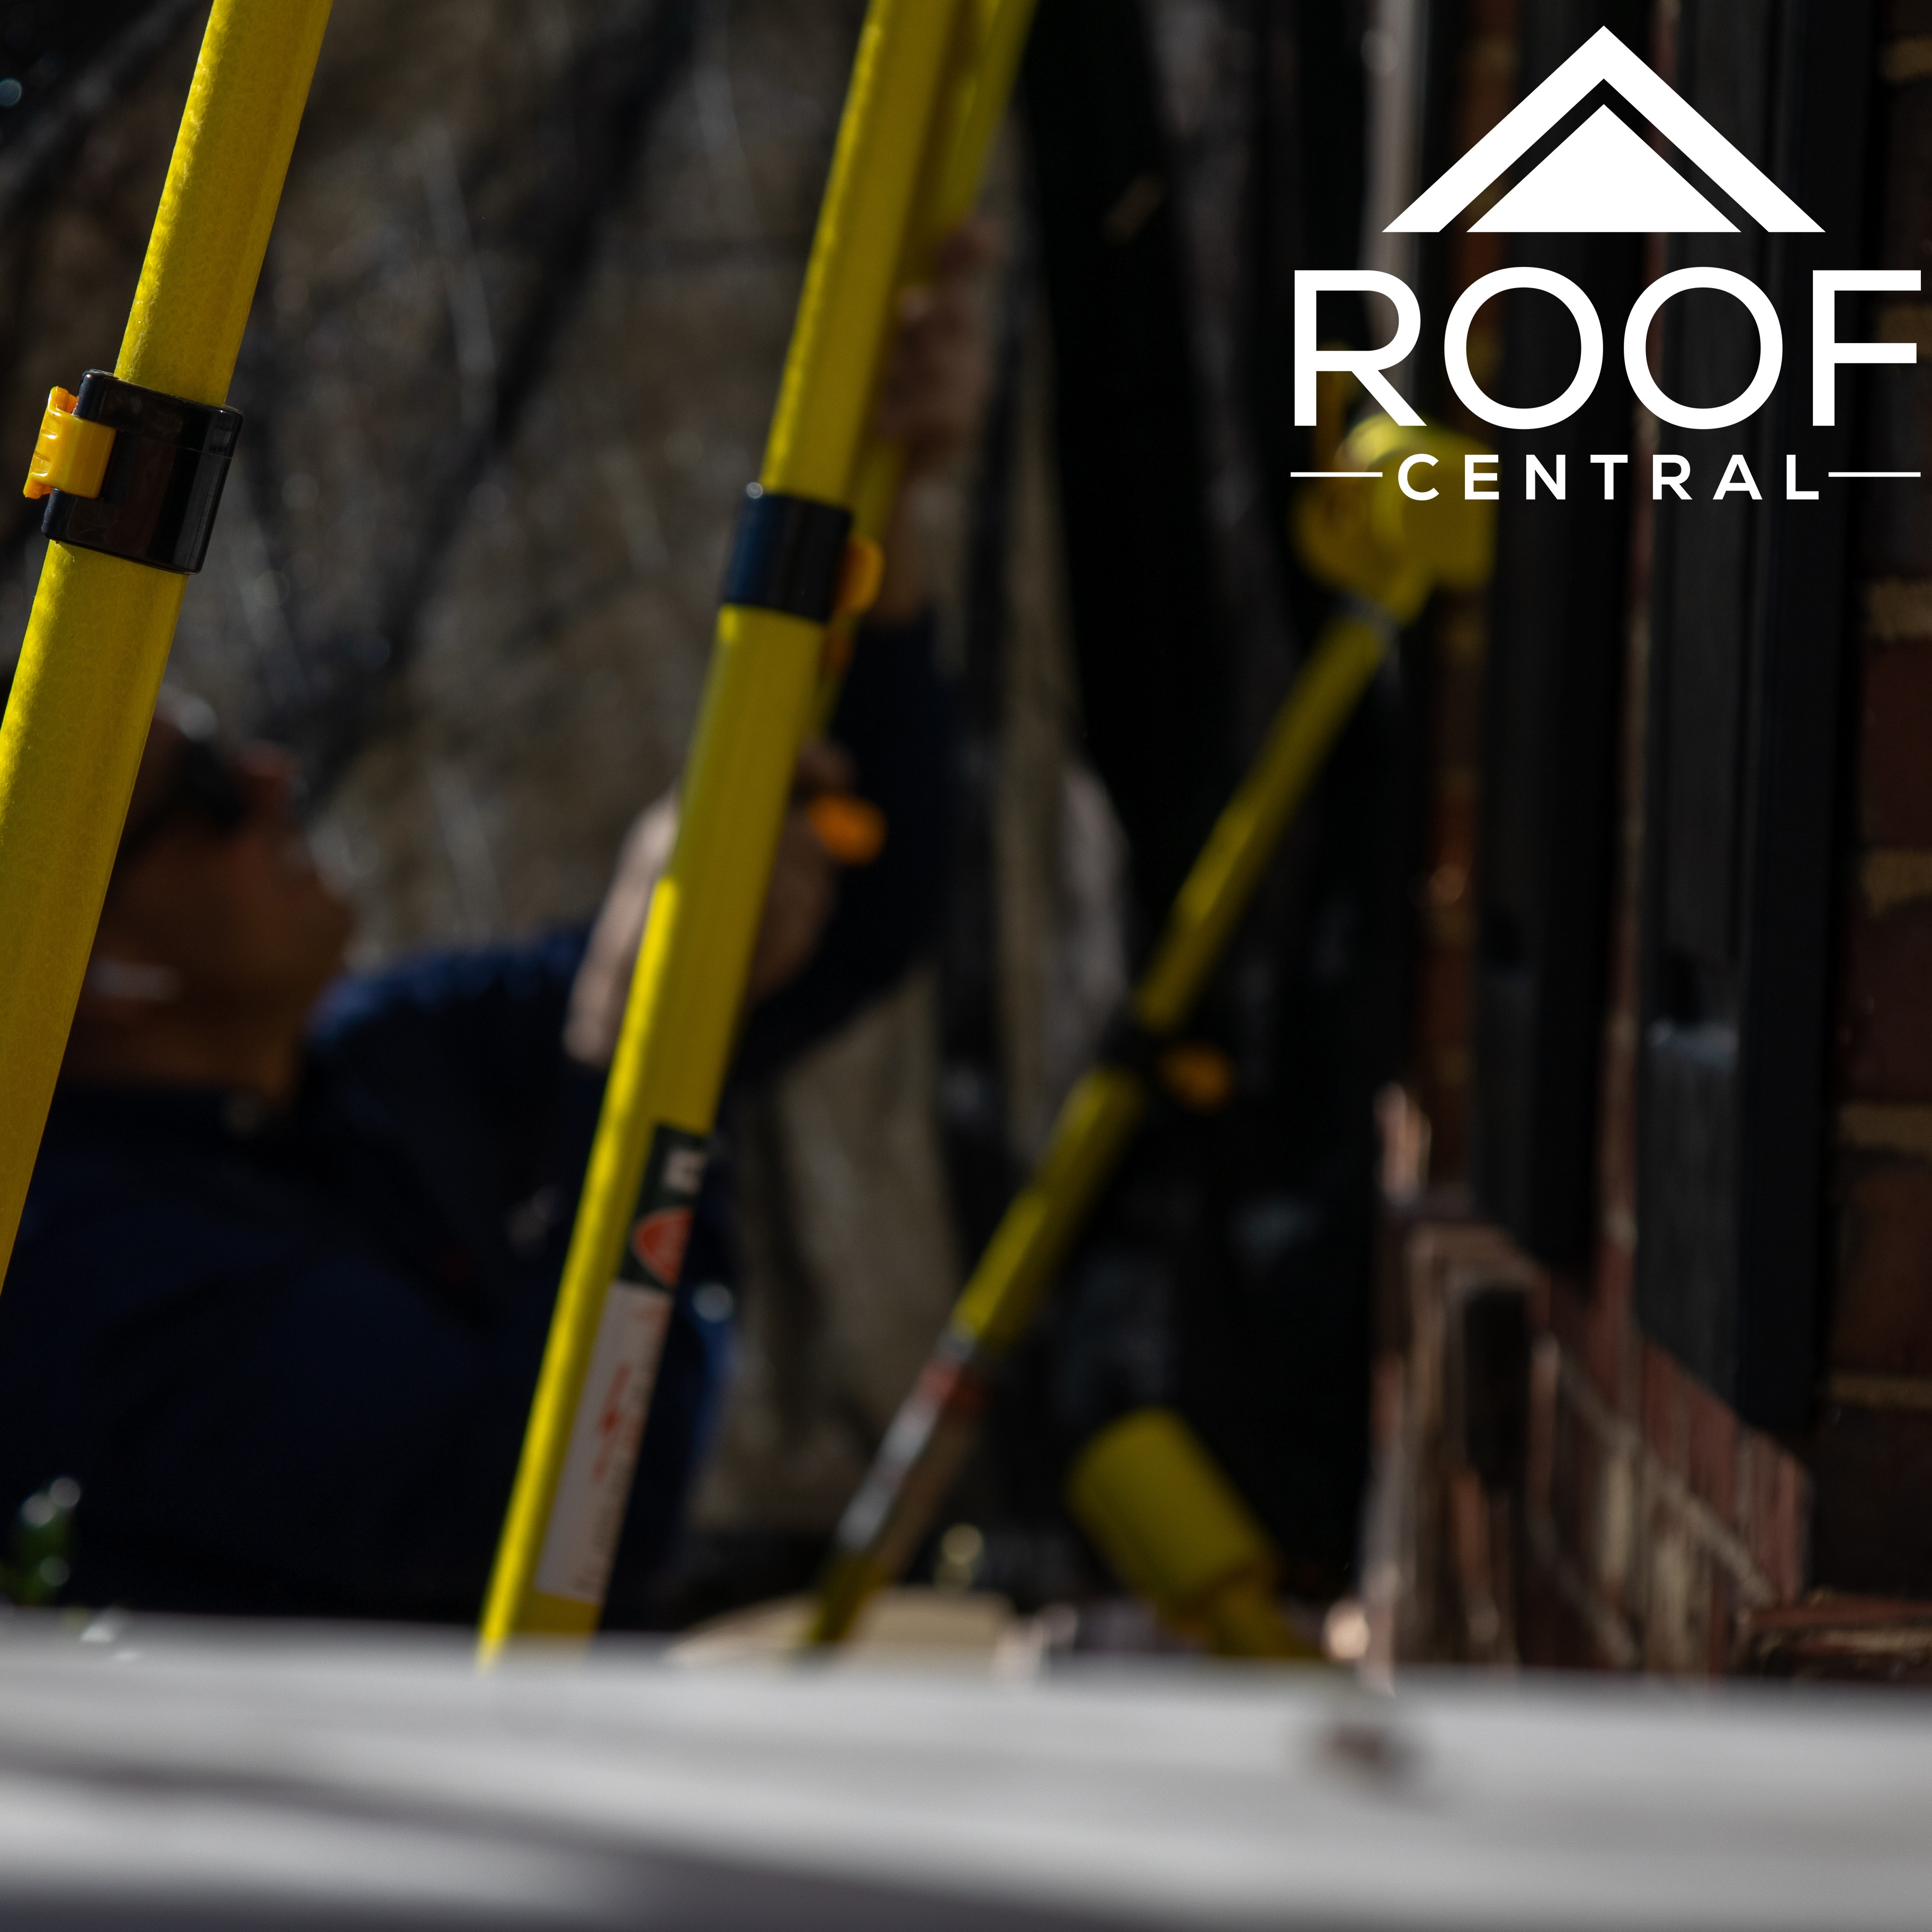 A roofer working on security safety equipment in front of a house.